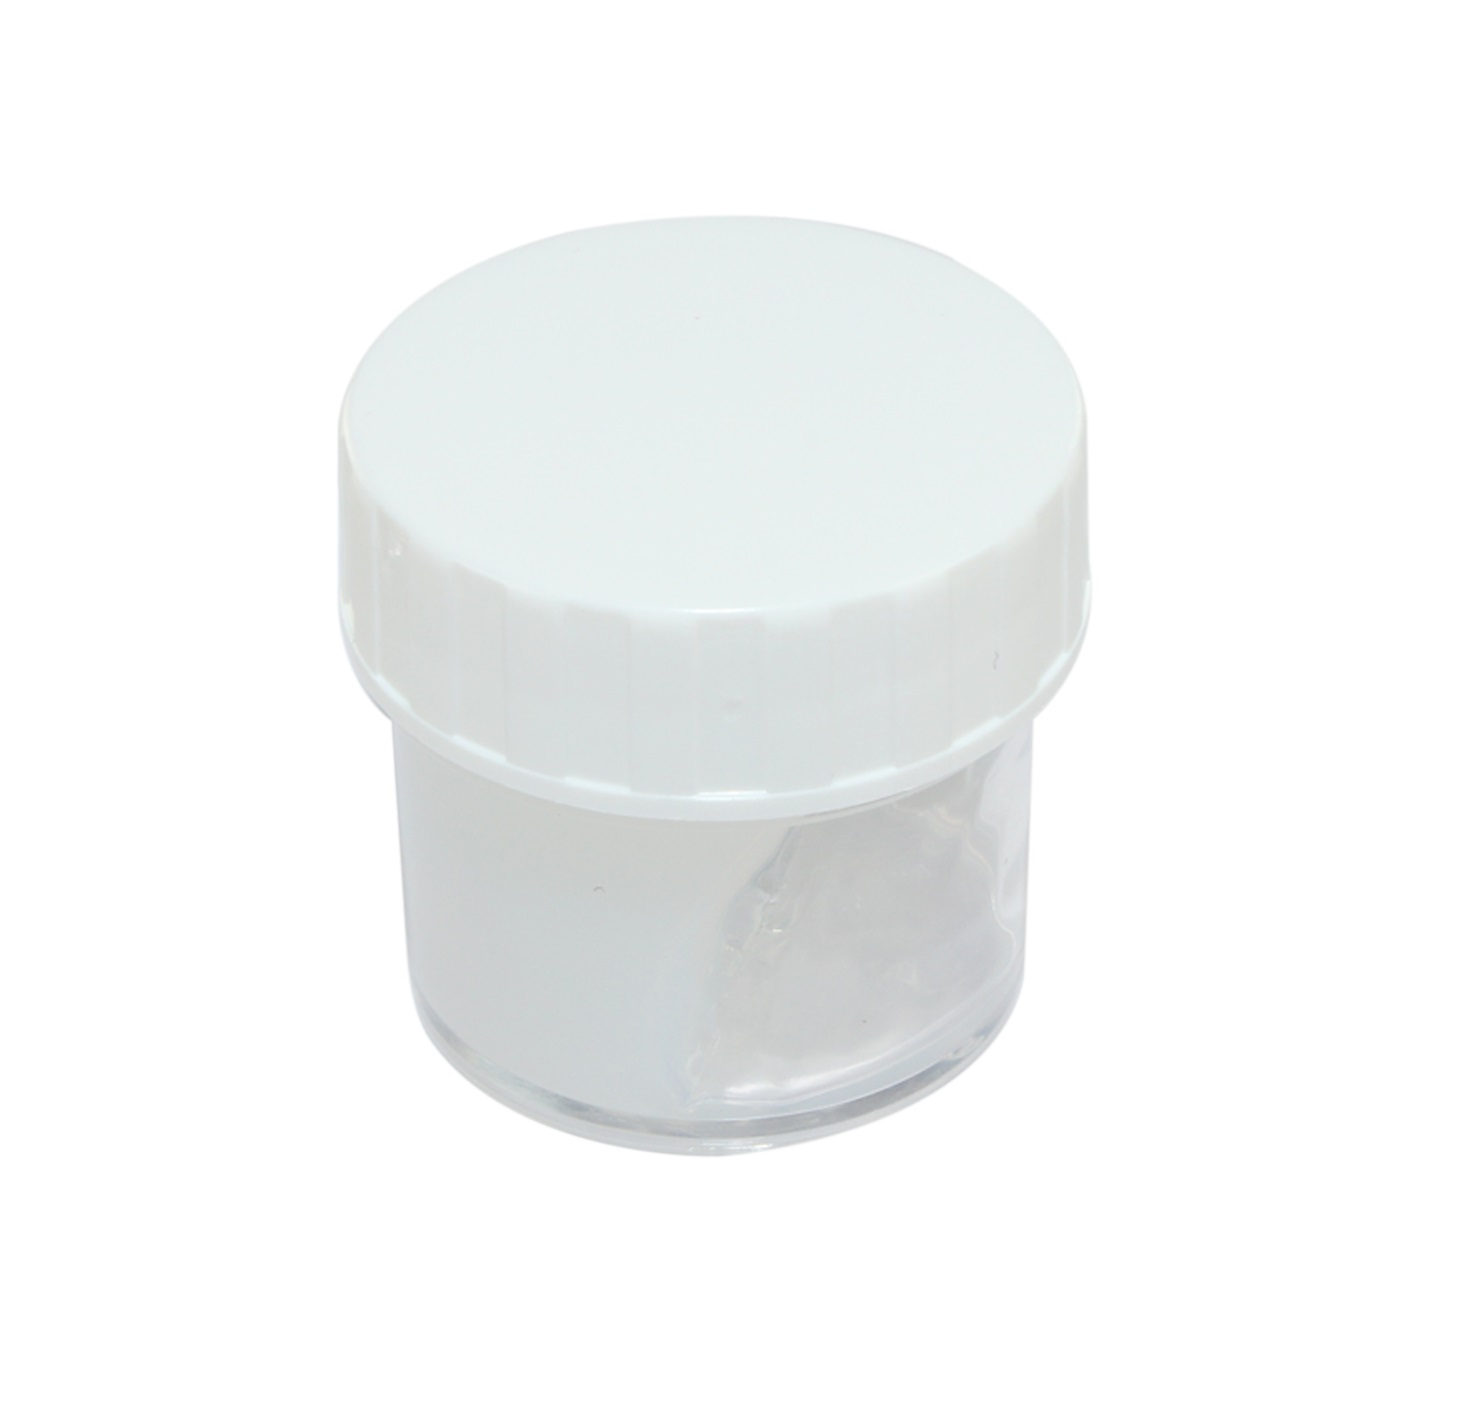 High Vacuum Silicone Grease, Rhodorsil, 15mL (Biohit/Sartorius)